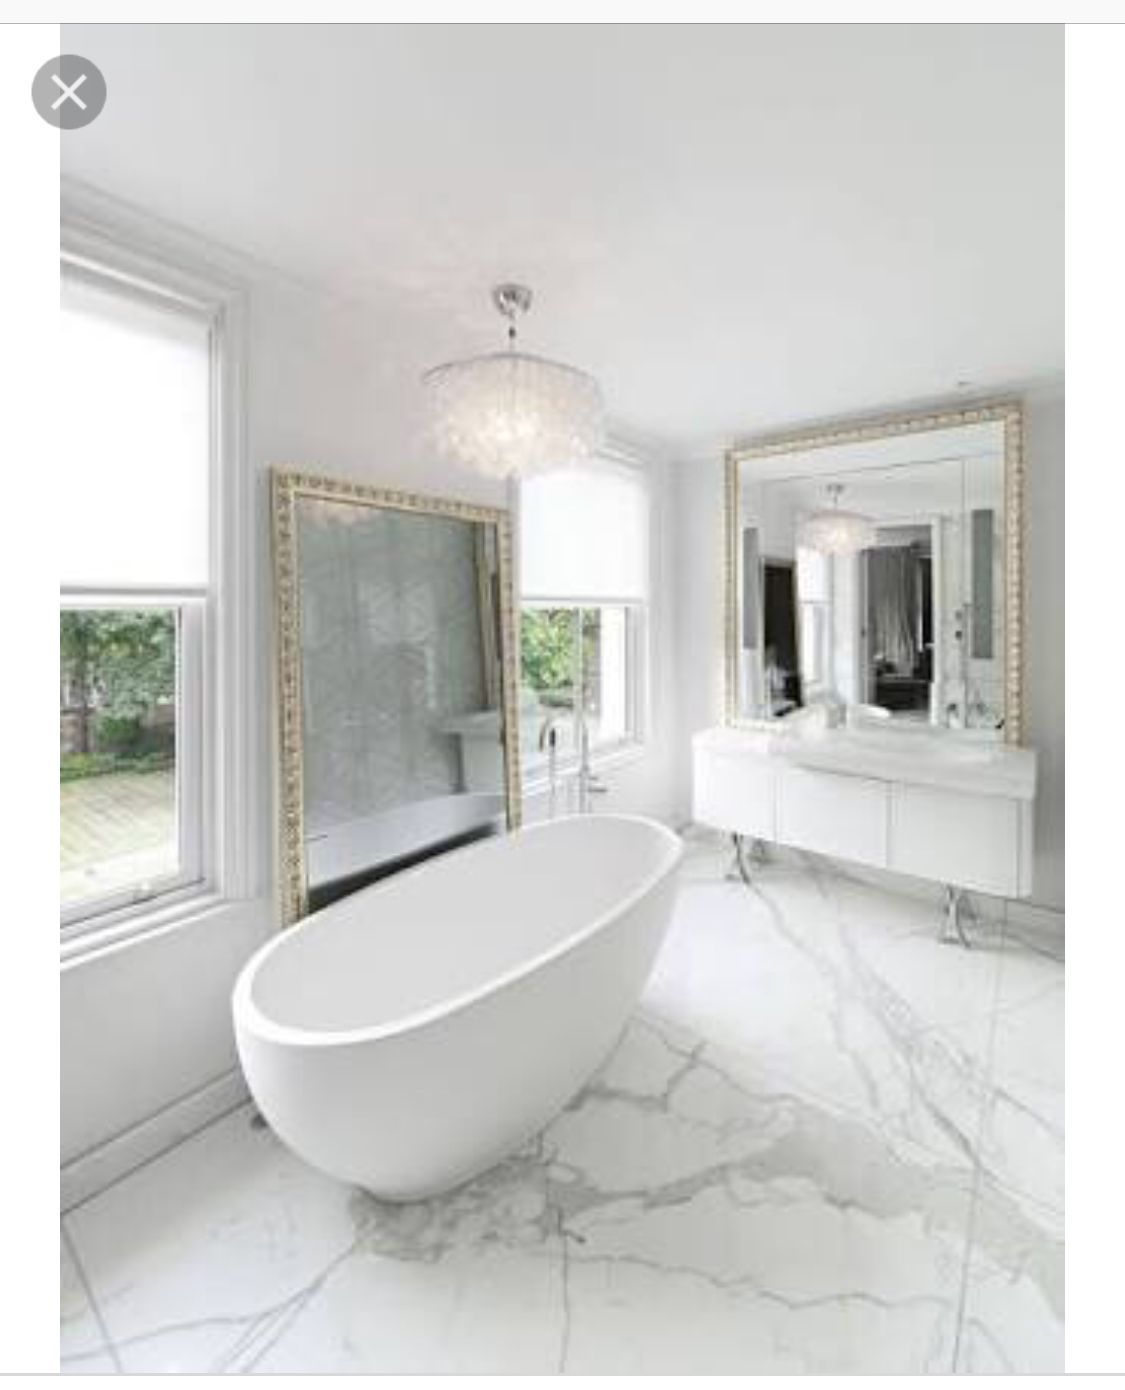 Pin by Leila Hale on Beautiful bathrooms... | Pinterest